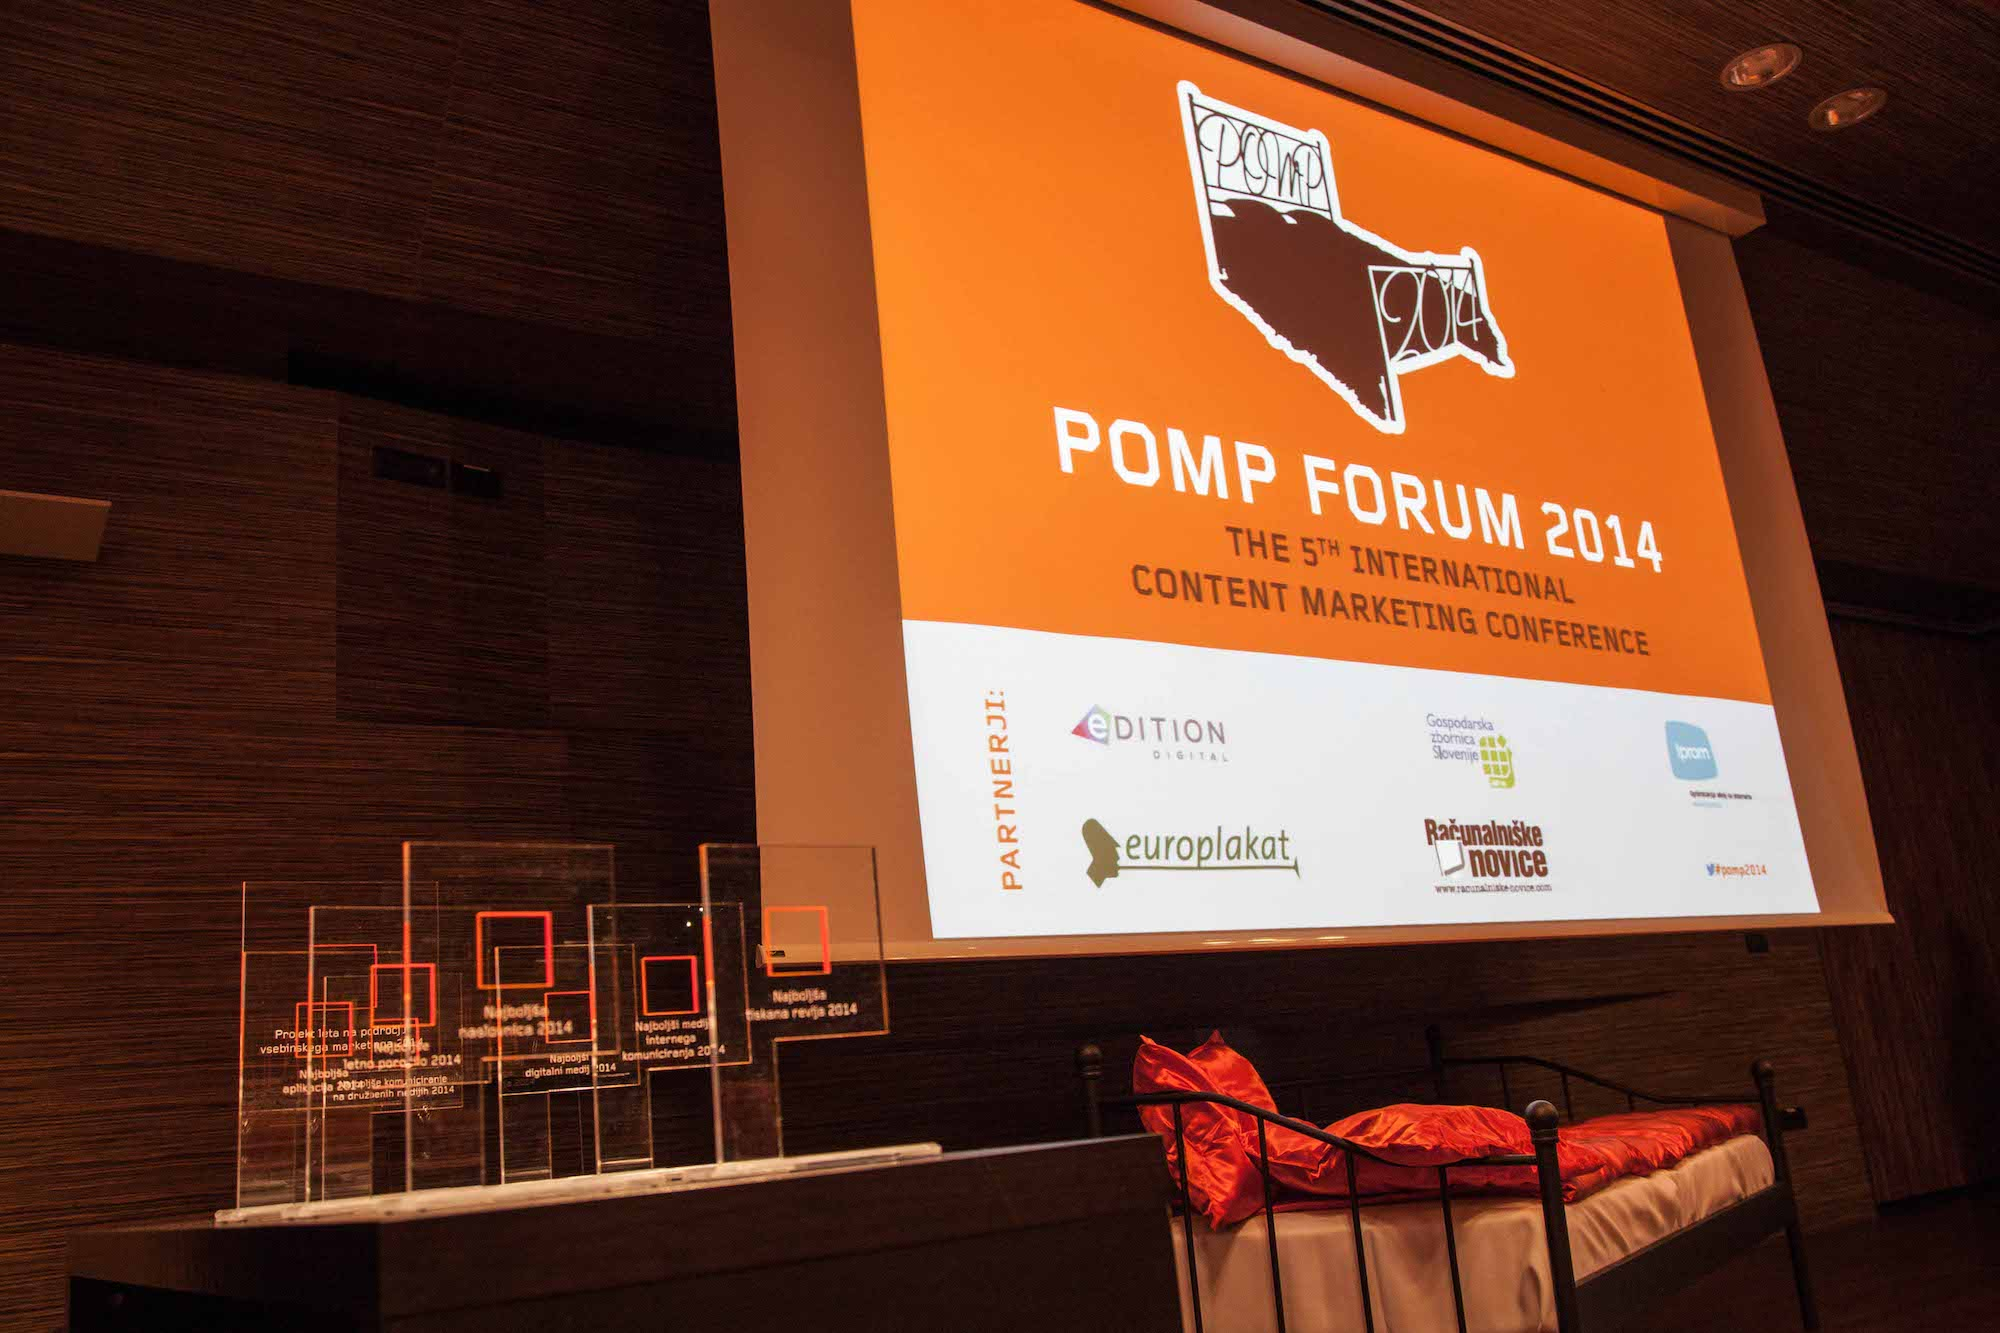 https://pomp-forum.si/wp-content/uploads/2019/06/pomp-forum-2014-marketing-conference.jpg